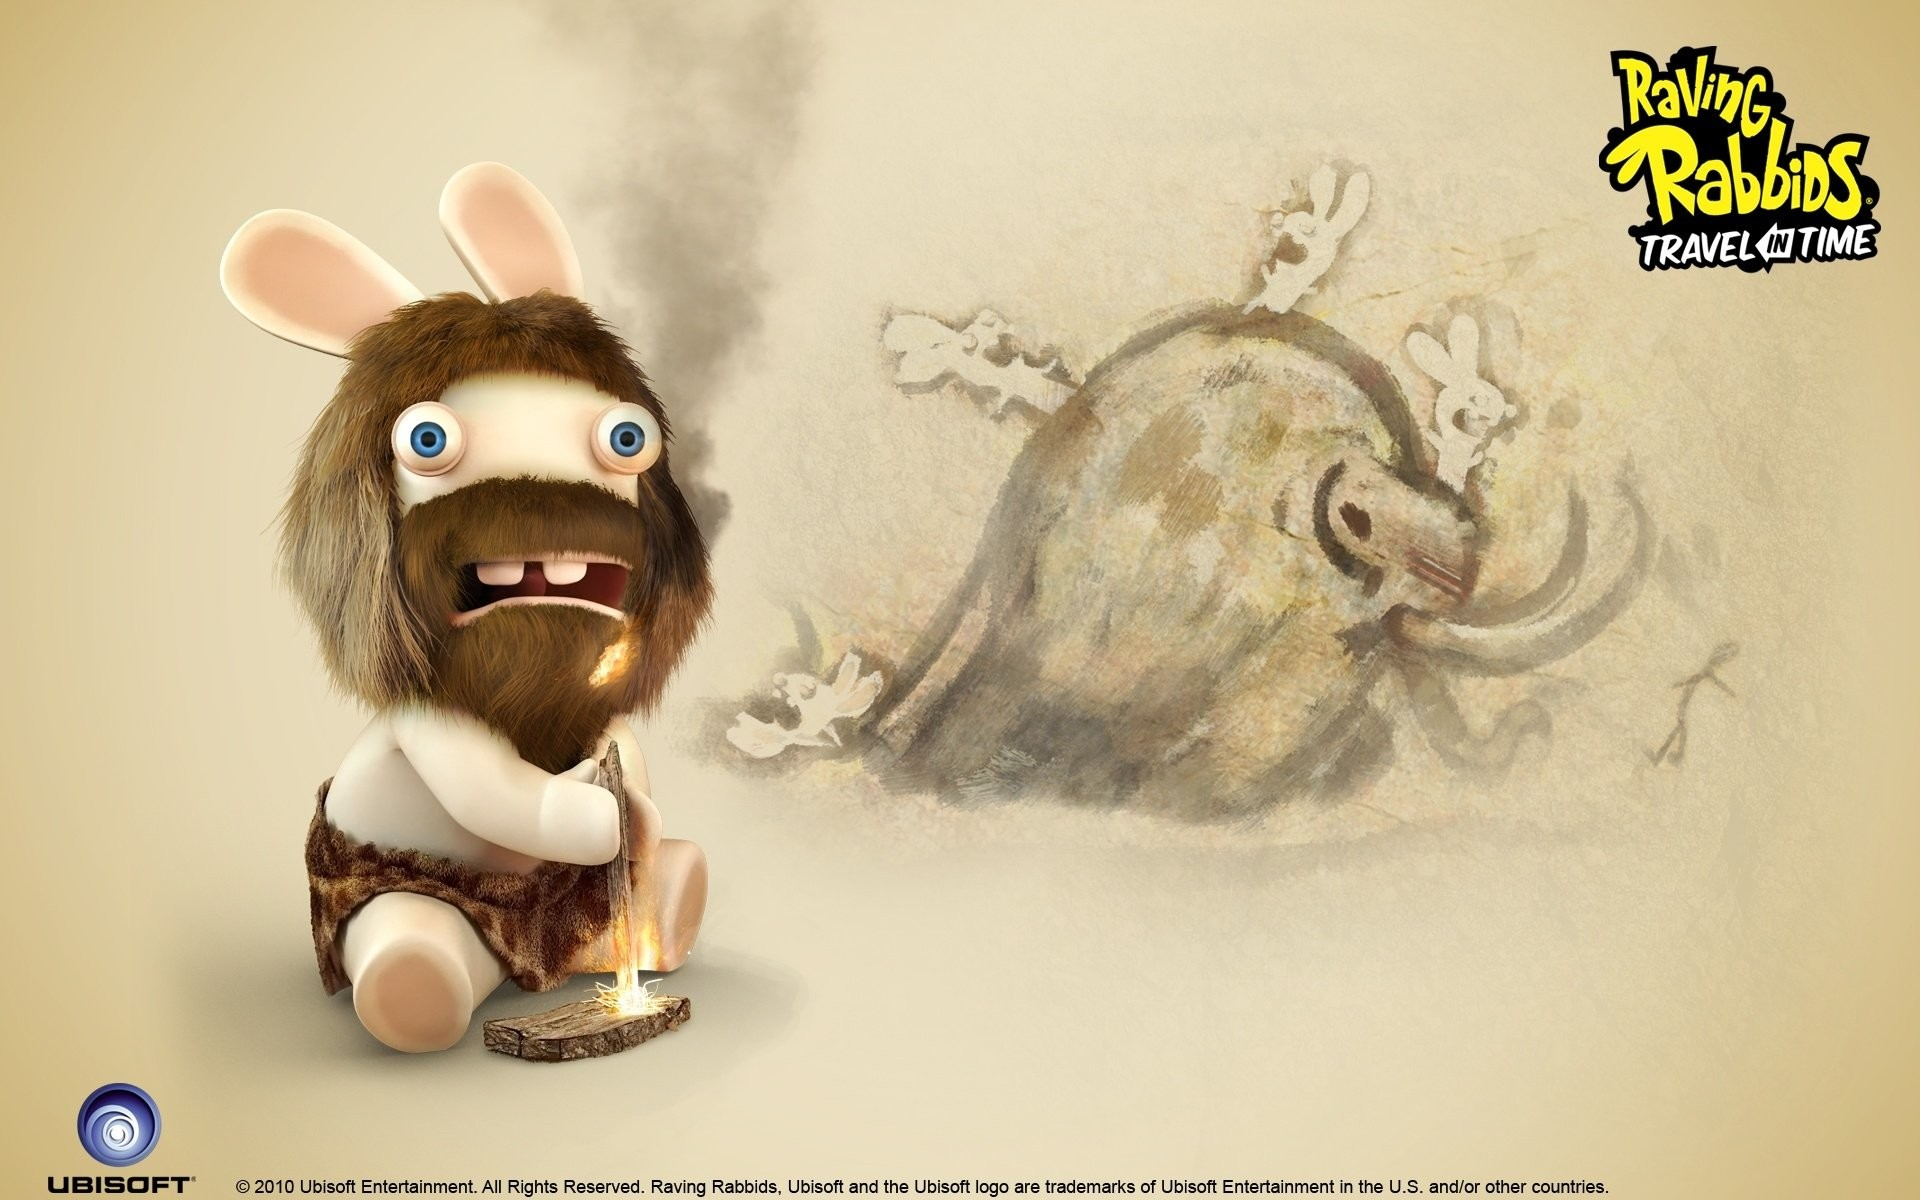 1920x1200 Raving Rabbids: Travel In Time #22